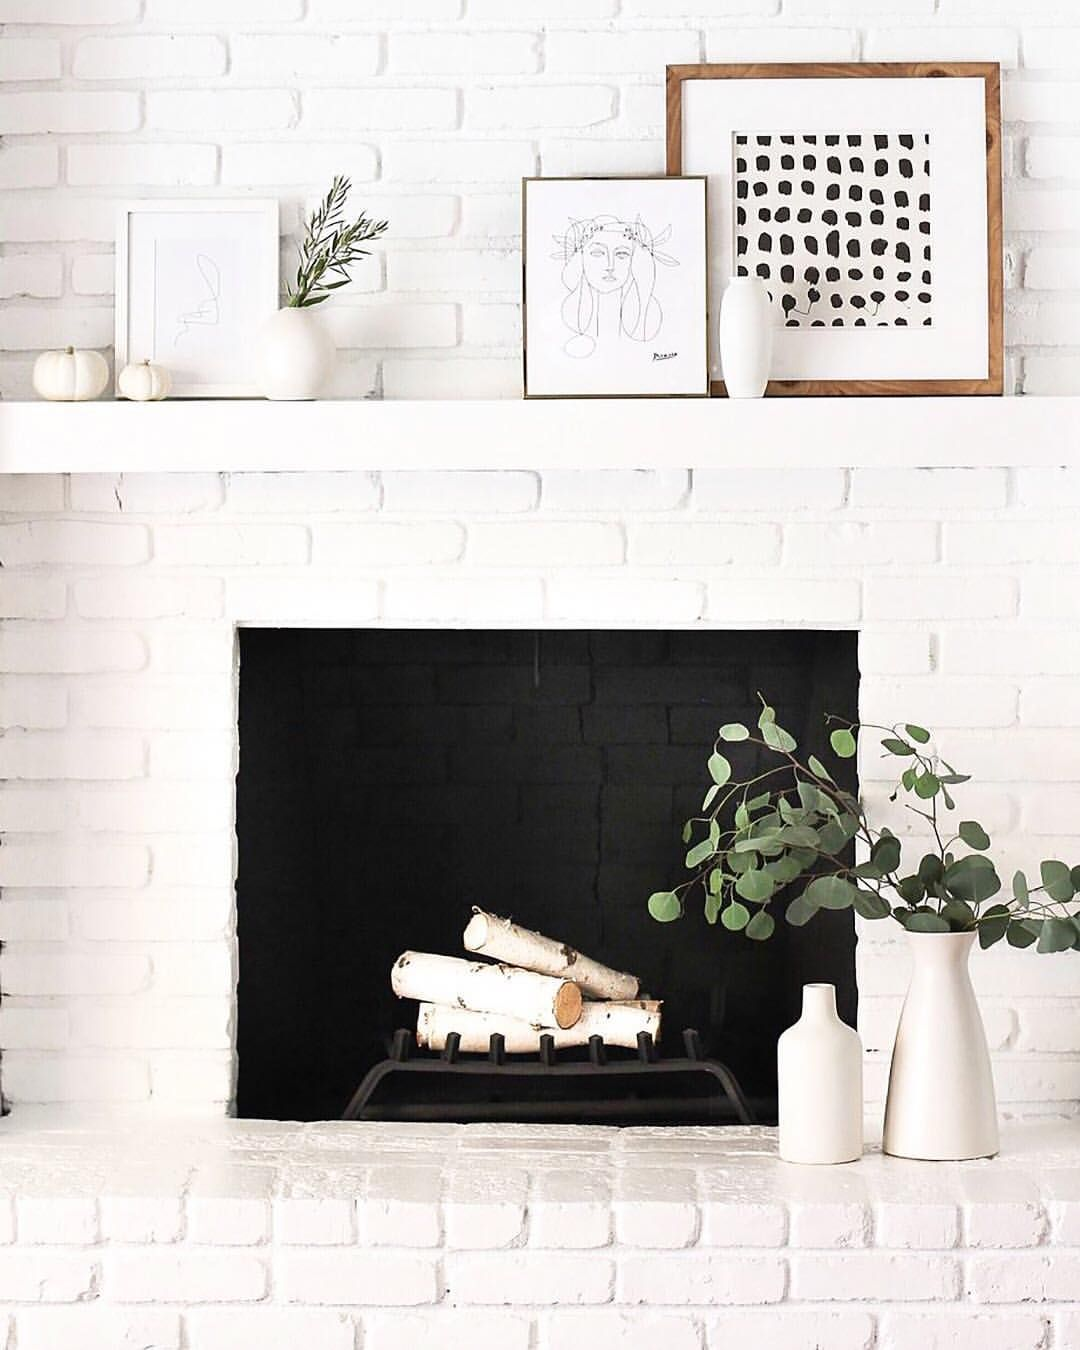 Inspiring Sitting Room Decor Ideas For Inviting And Cozy: This Is A Cozy Little Fireplace